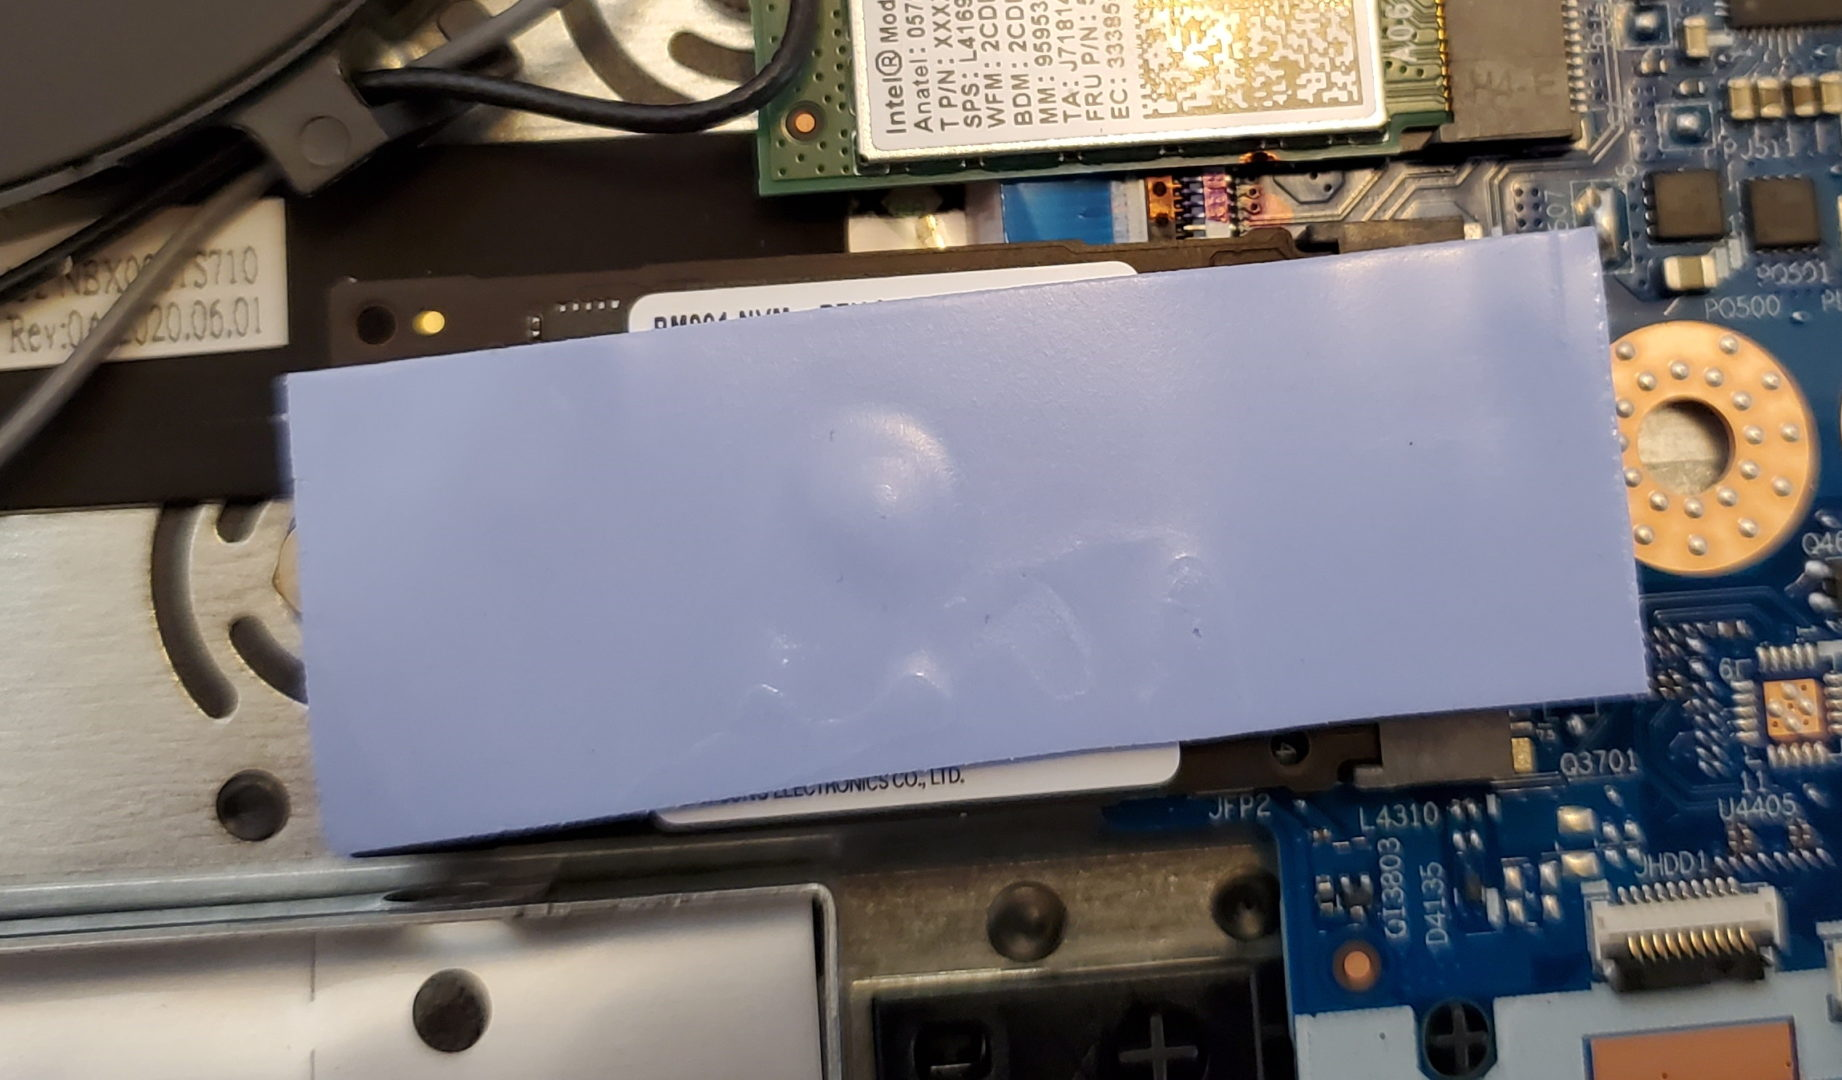 photo of the m.2 ssd with the thermal pad still on it